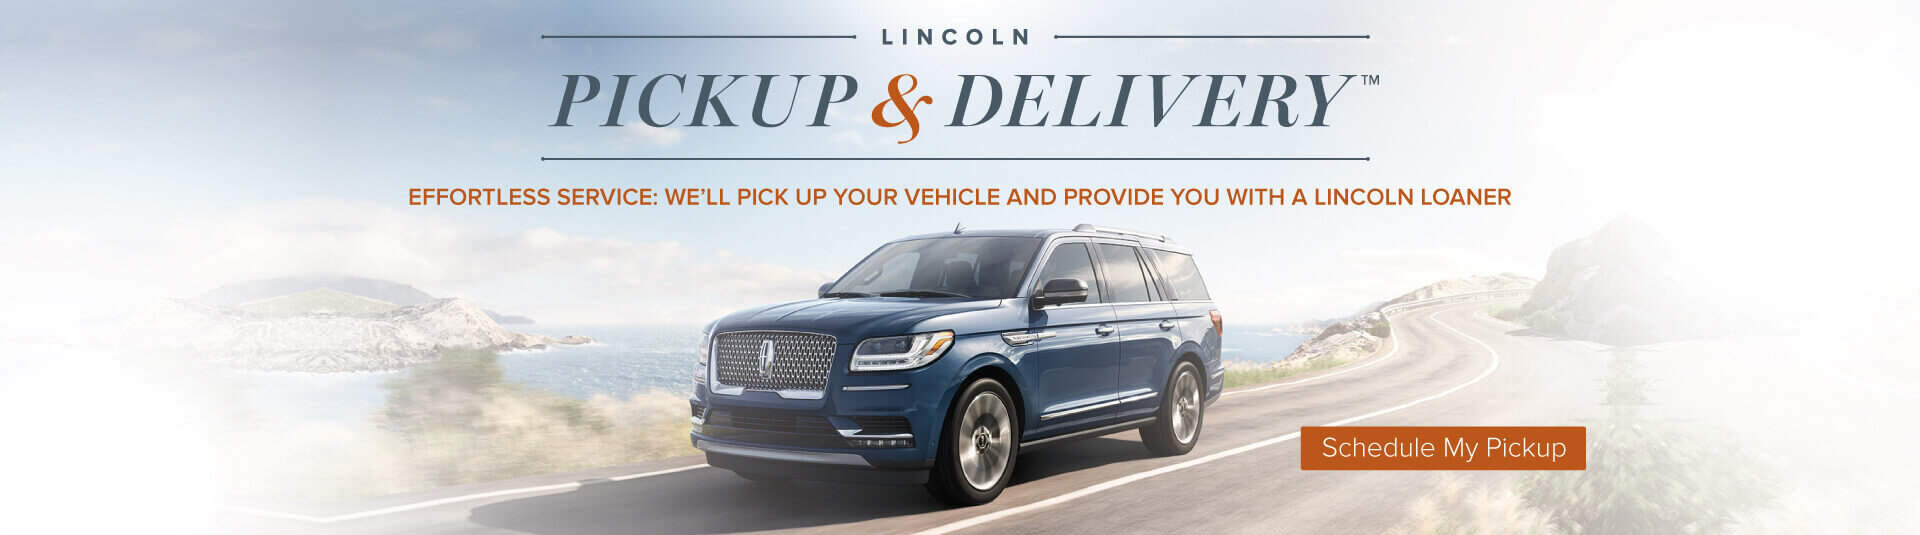 Lincoln Pickup and delivery service